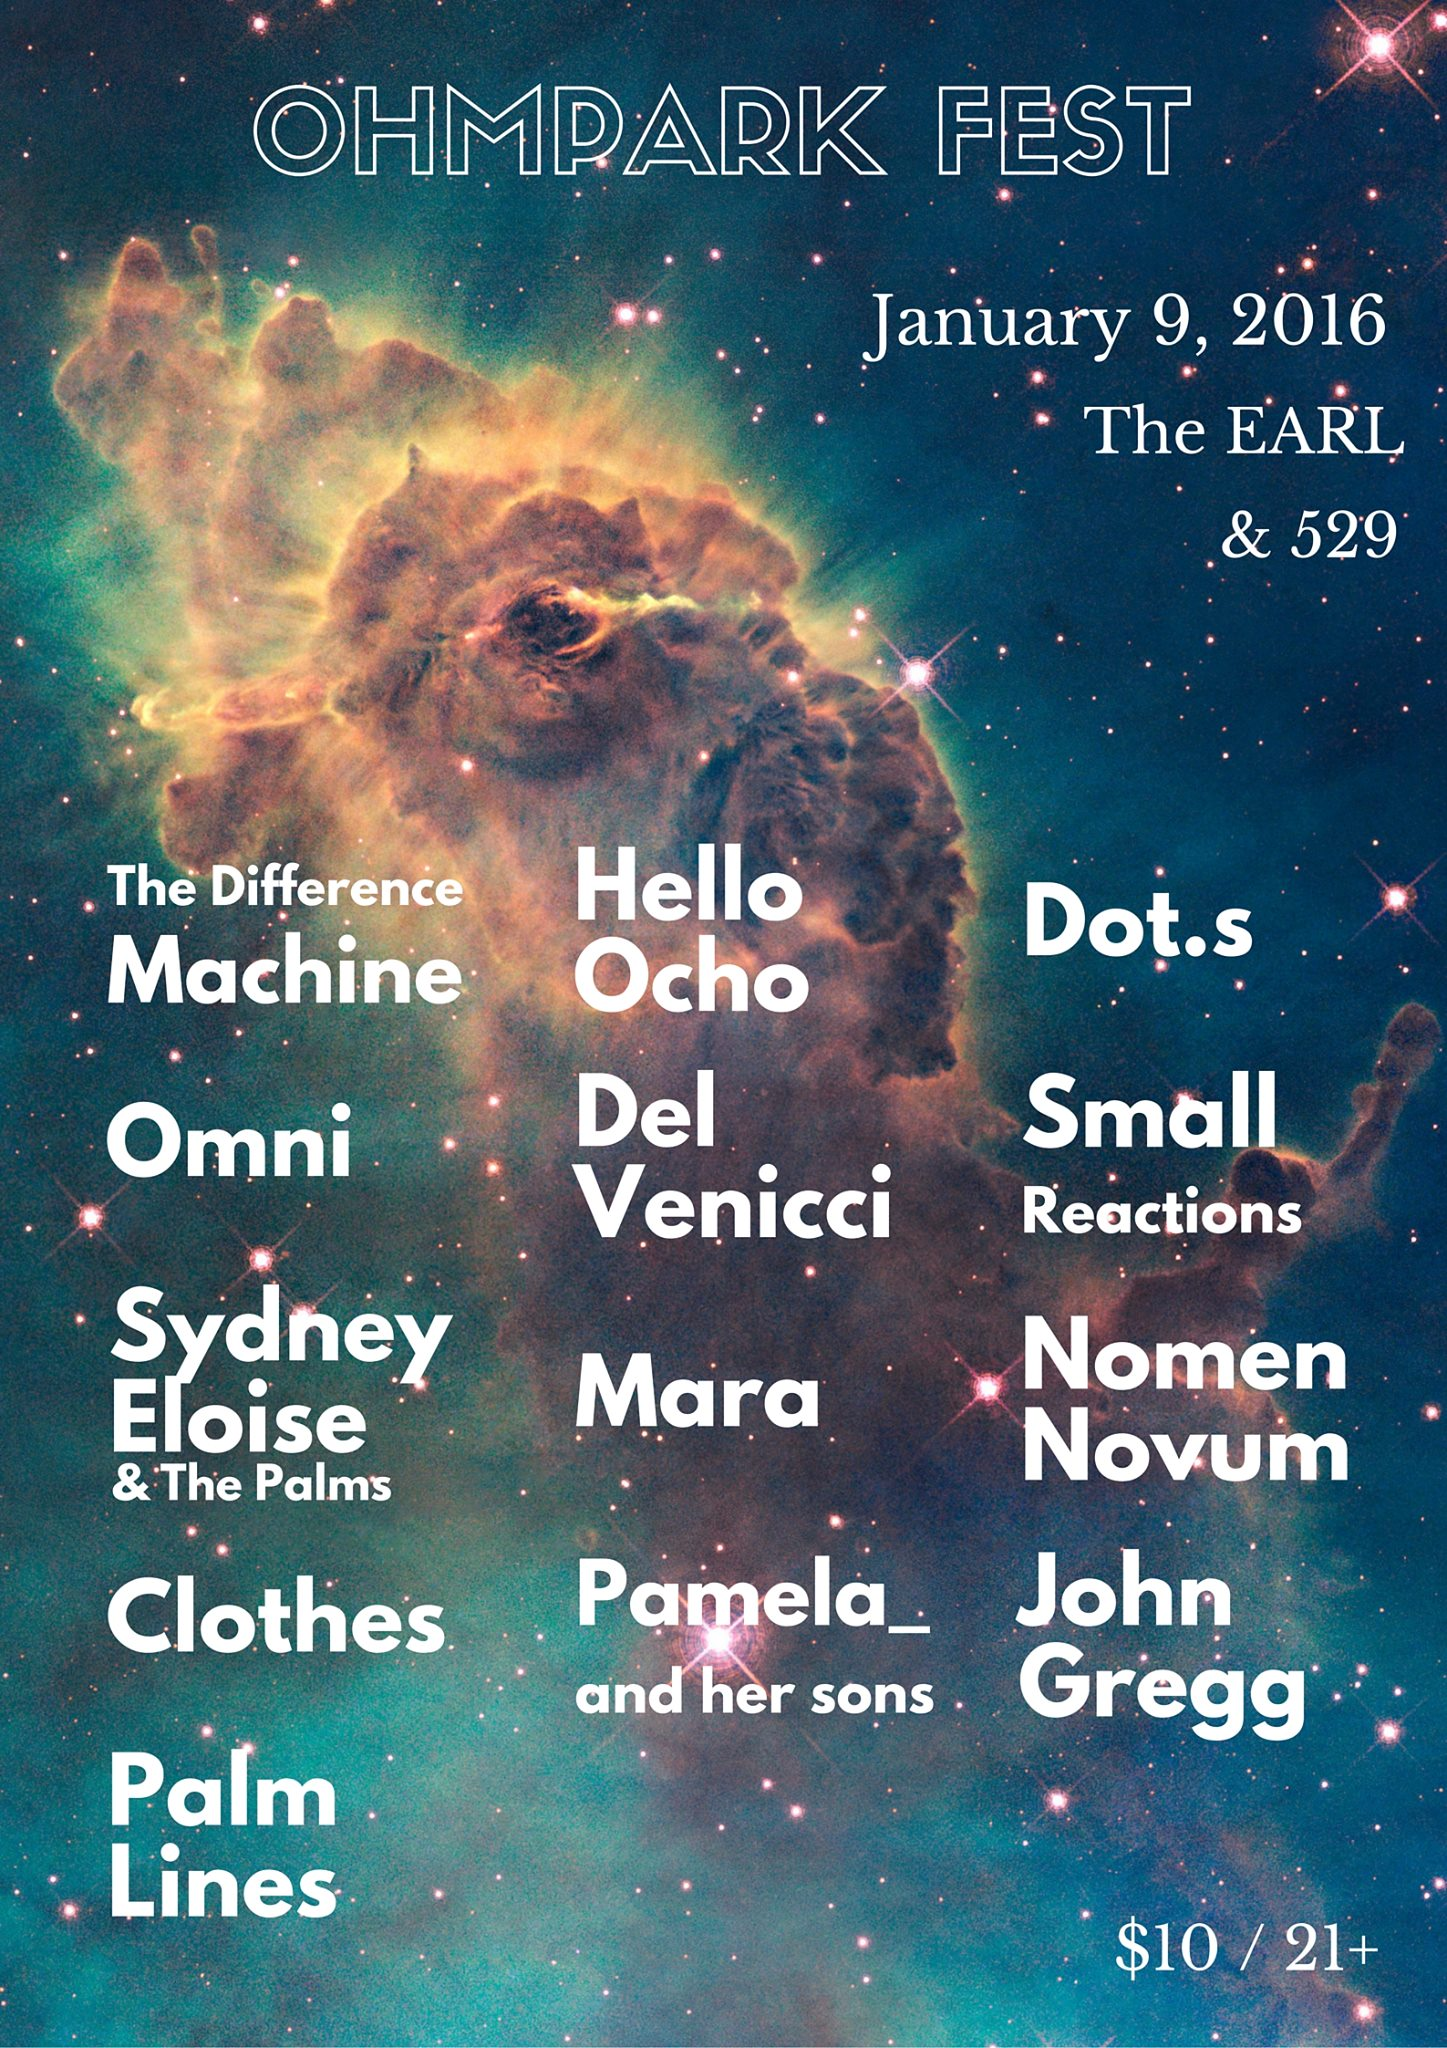 Ohmpark Fest returns this Saturday night at the EARL and 529.